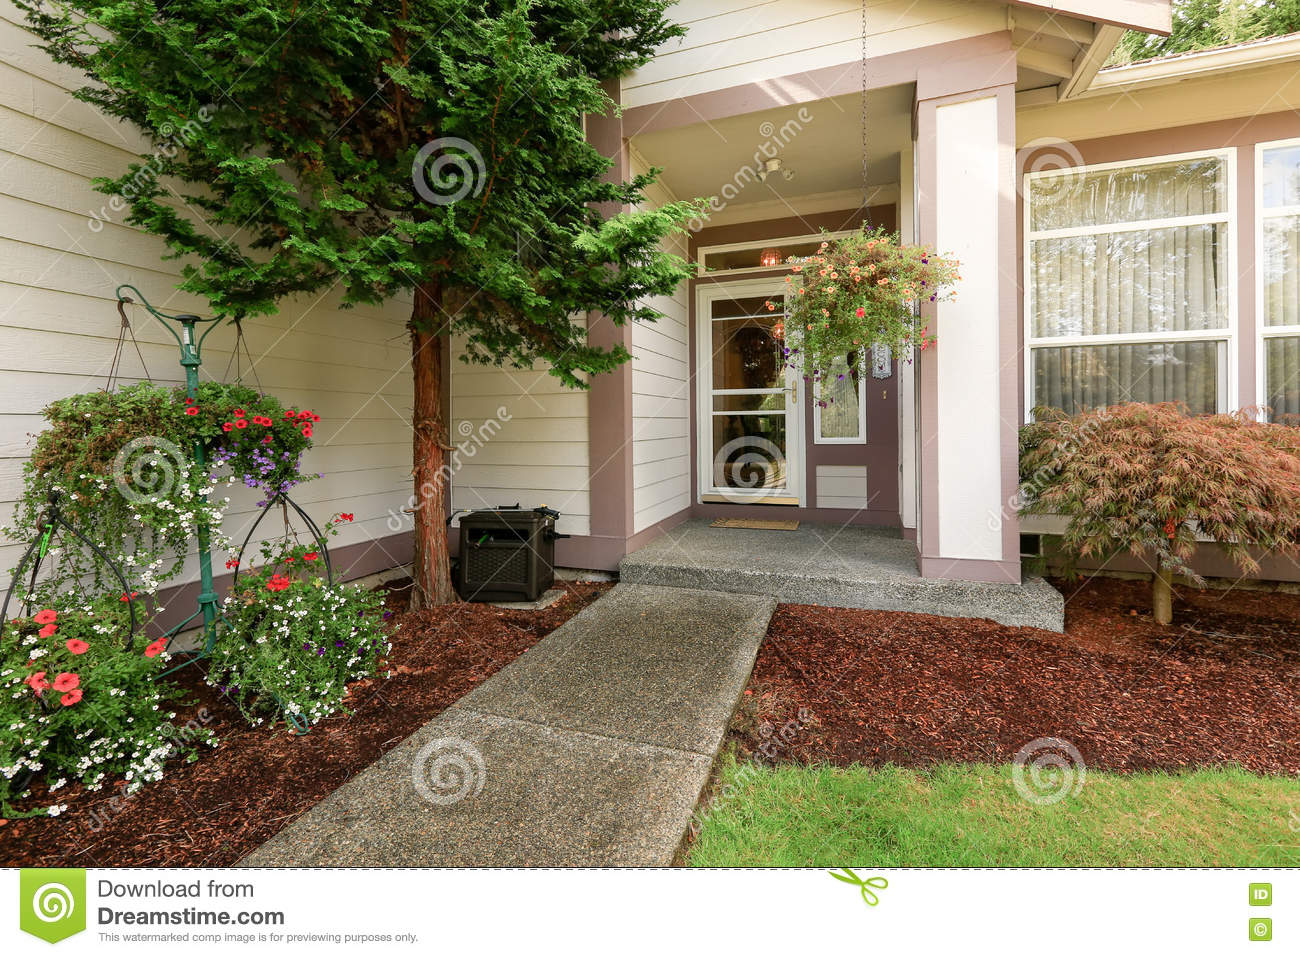 Soft Creamy Colors Siding House Entrance Porch With Glass Door